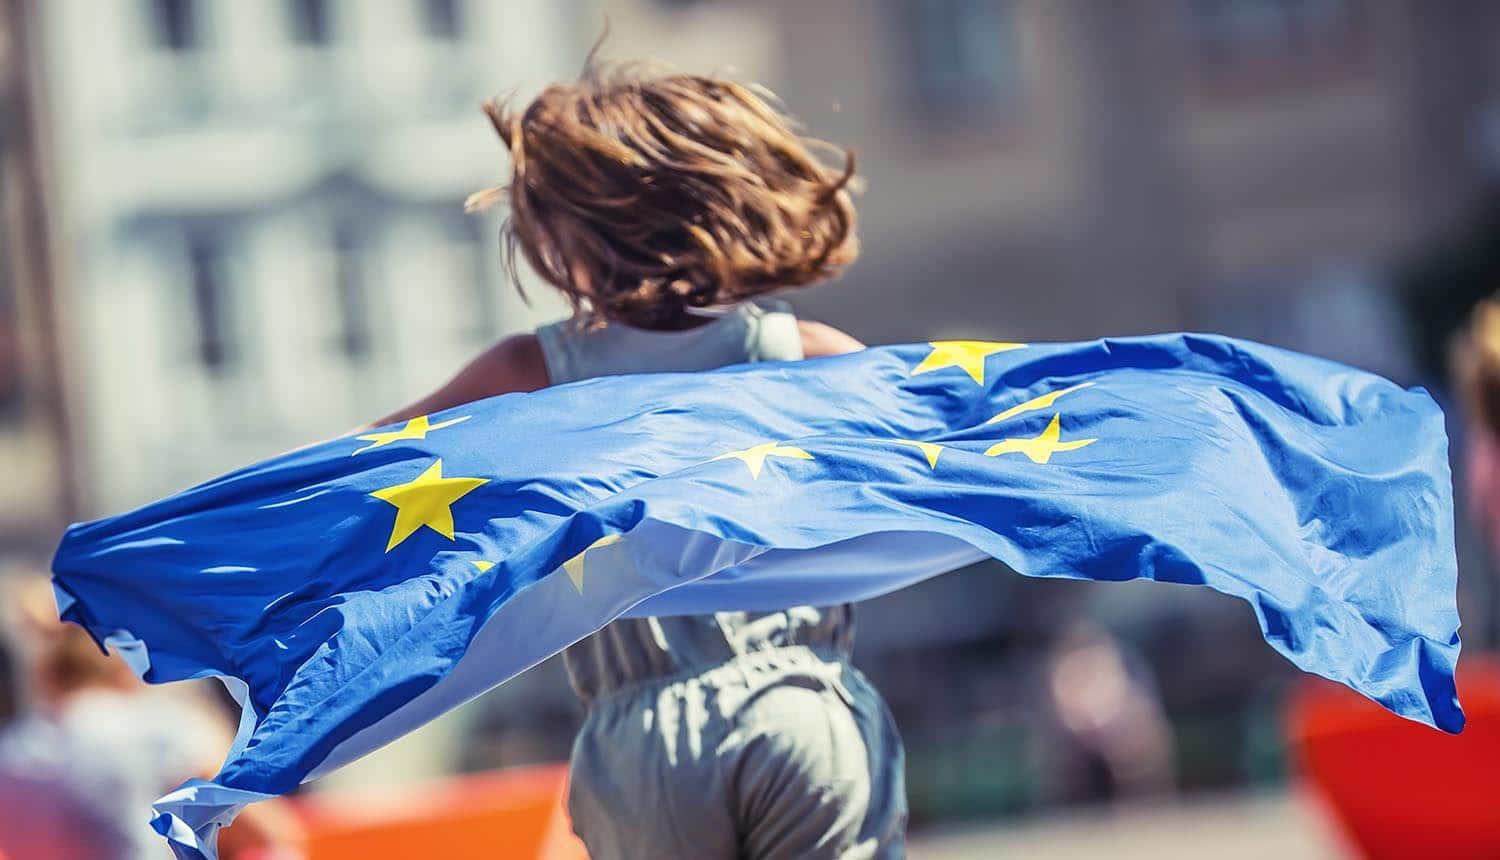 Girl with EU flag of running away from camera showing moving UK users away from EU privacy rules post Brexit